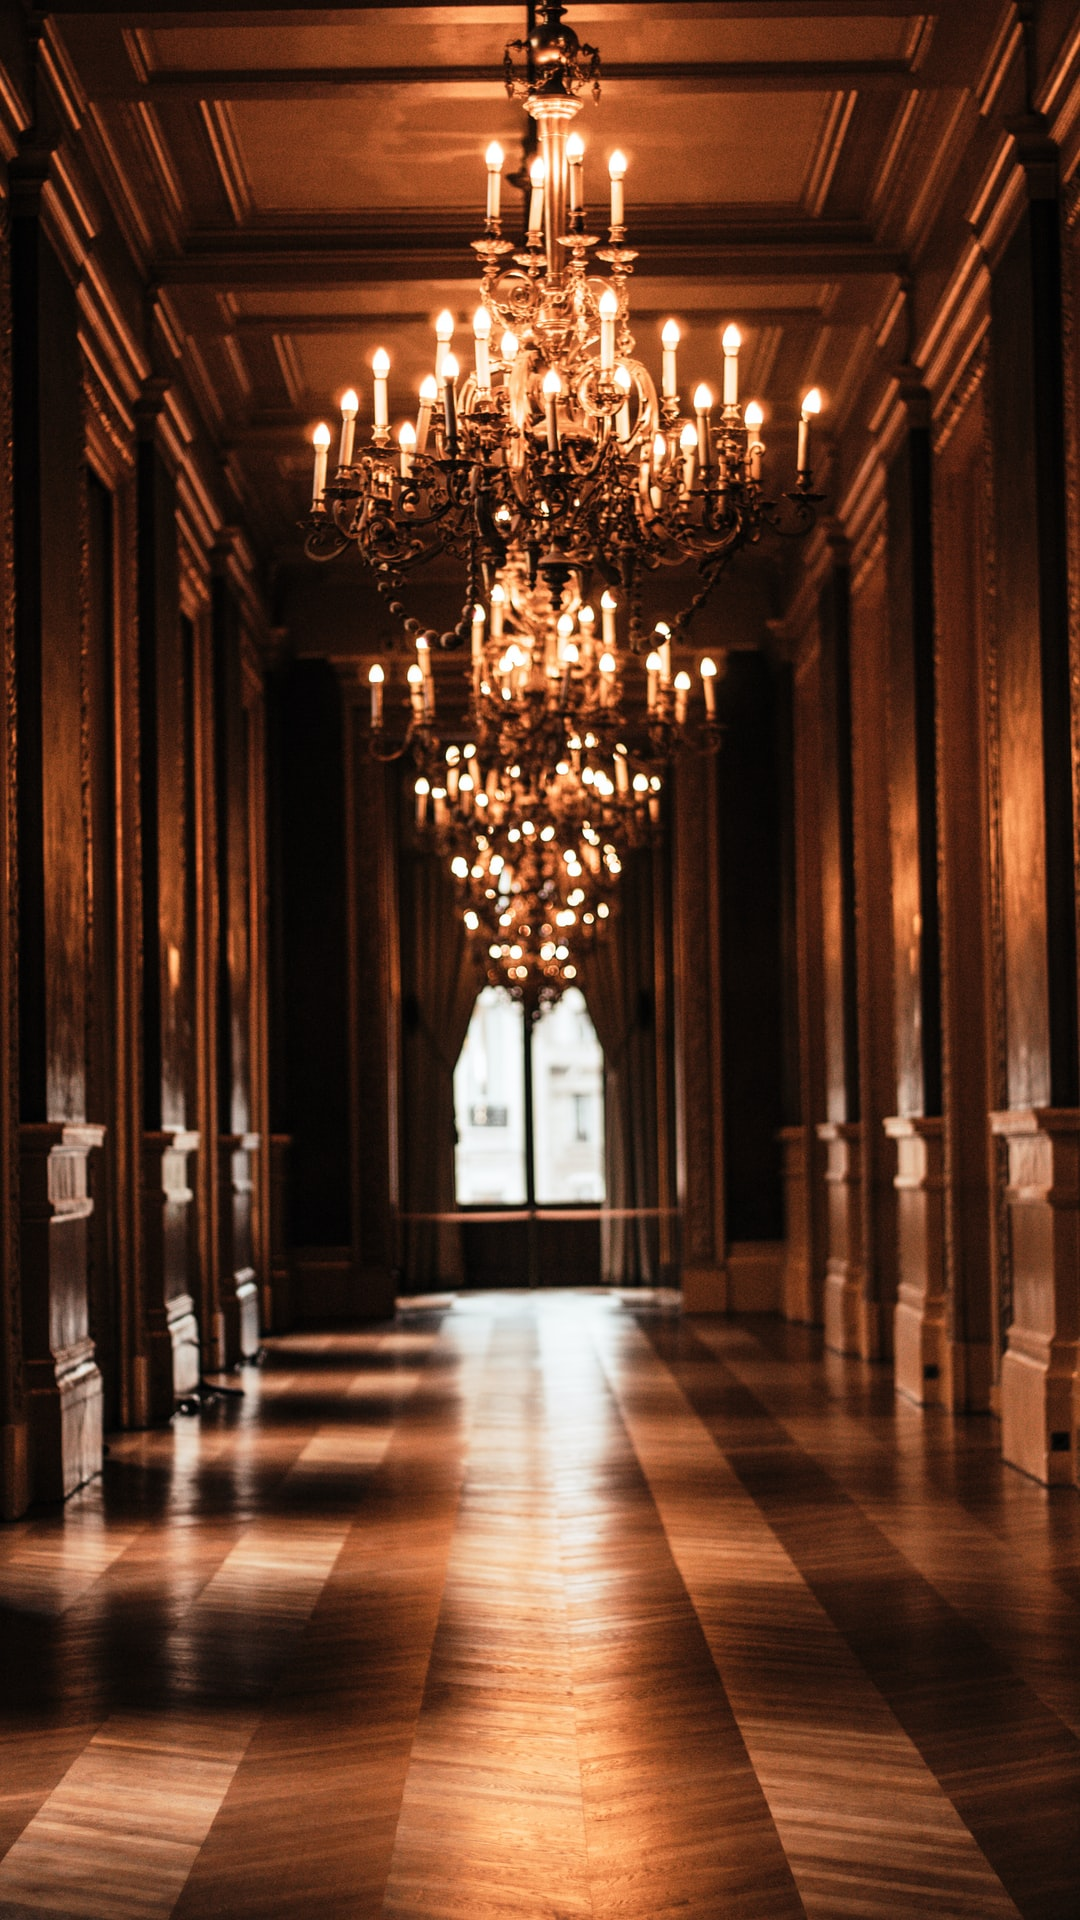 I was alone when walking through this hallway. The absolute beauty, padded Paris streets noise and the sound of my shoes on the parquet.